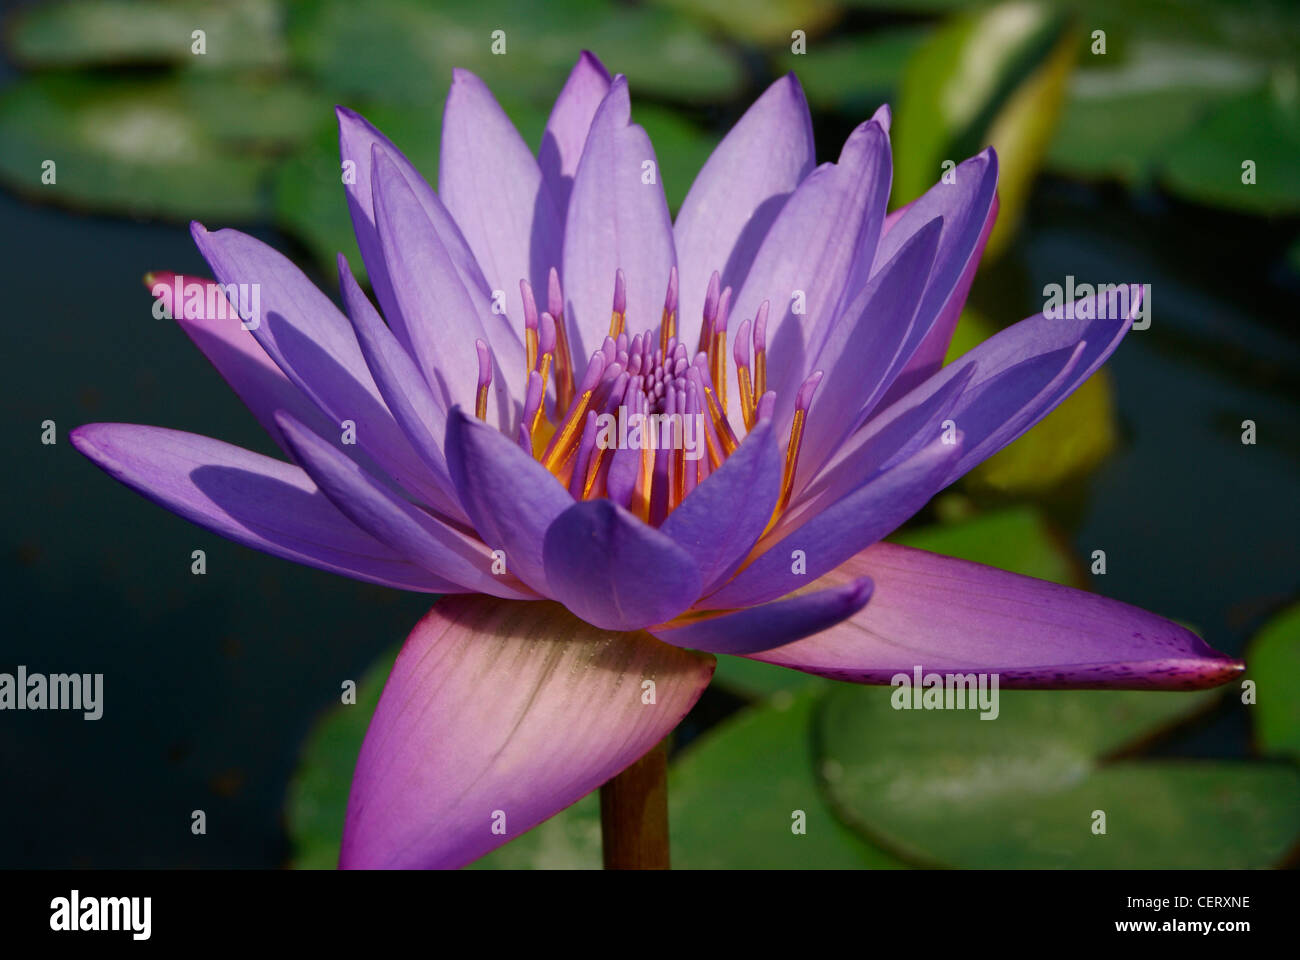 Lotus Flower Kerala Stock Photos Lotus Flower Kerala Stock Images